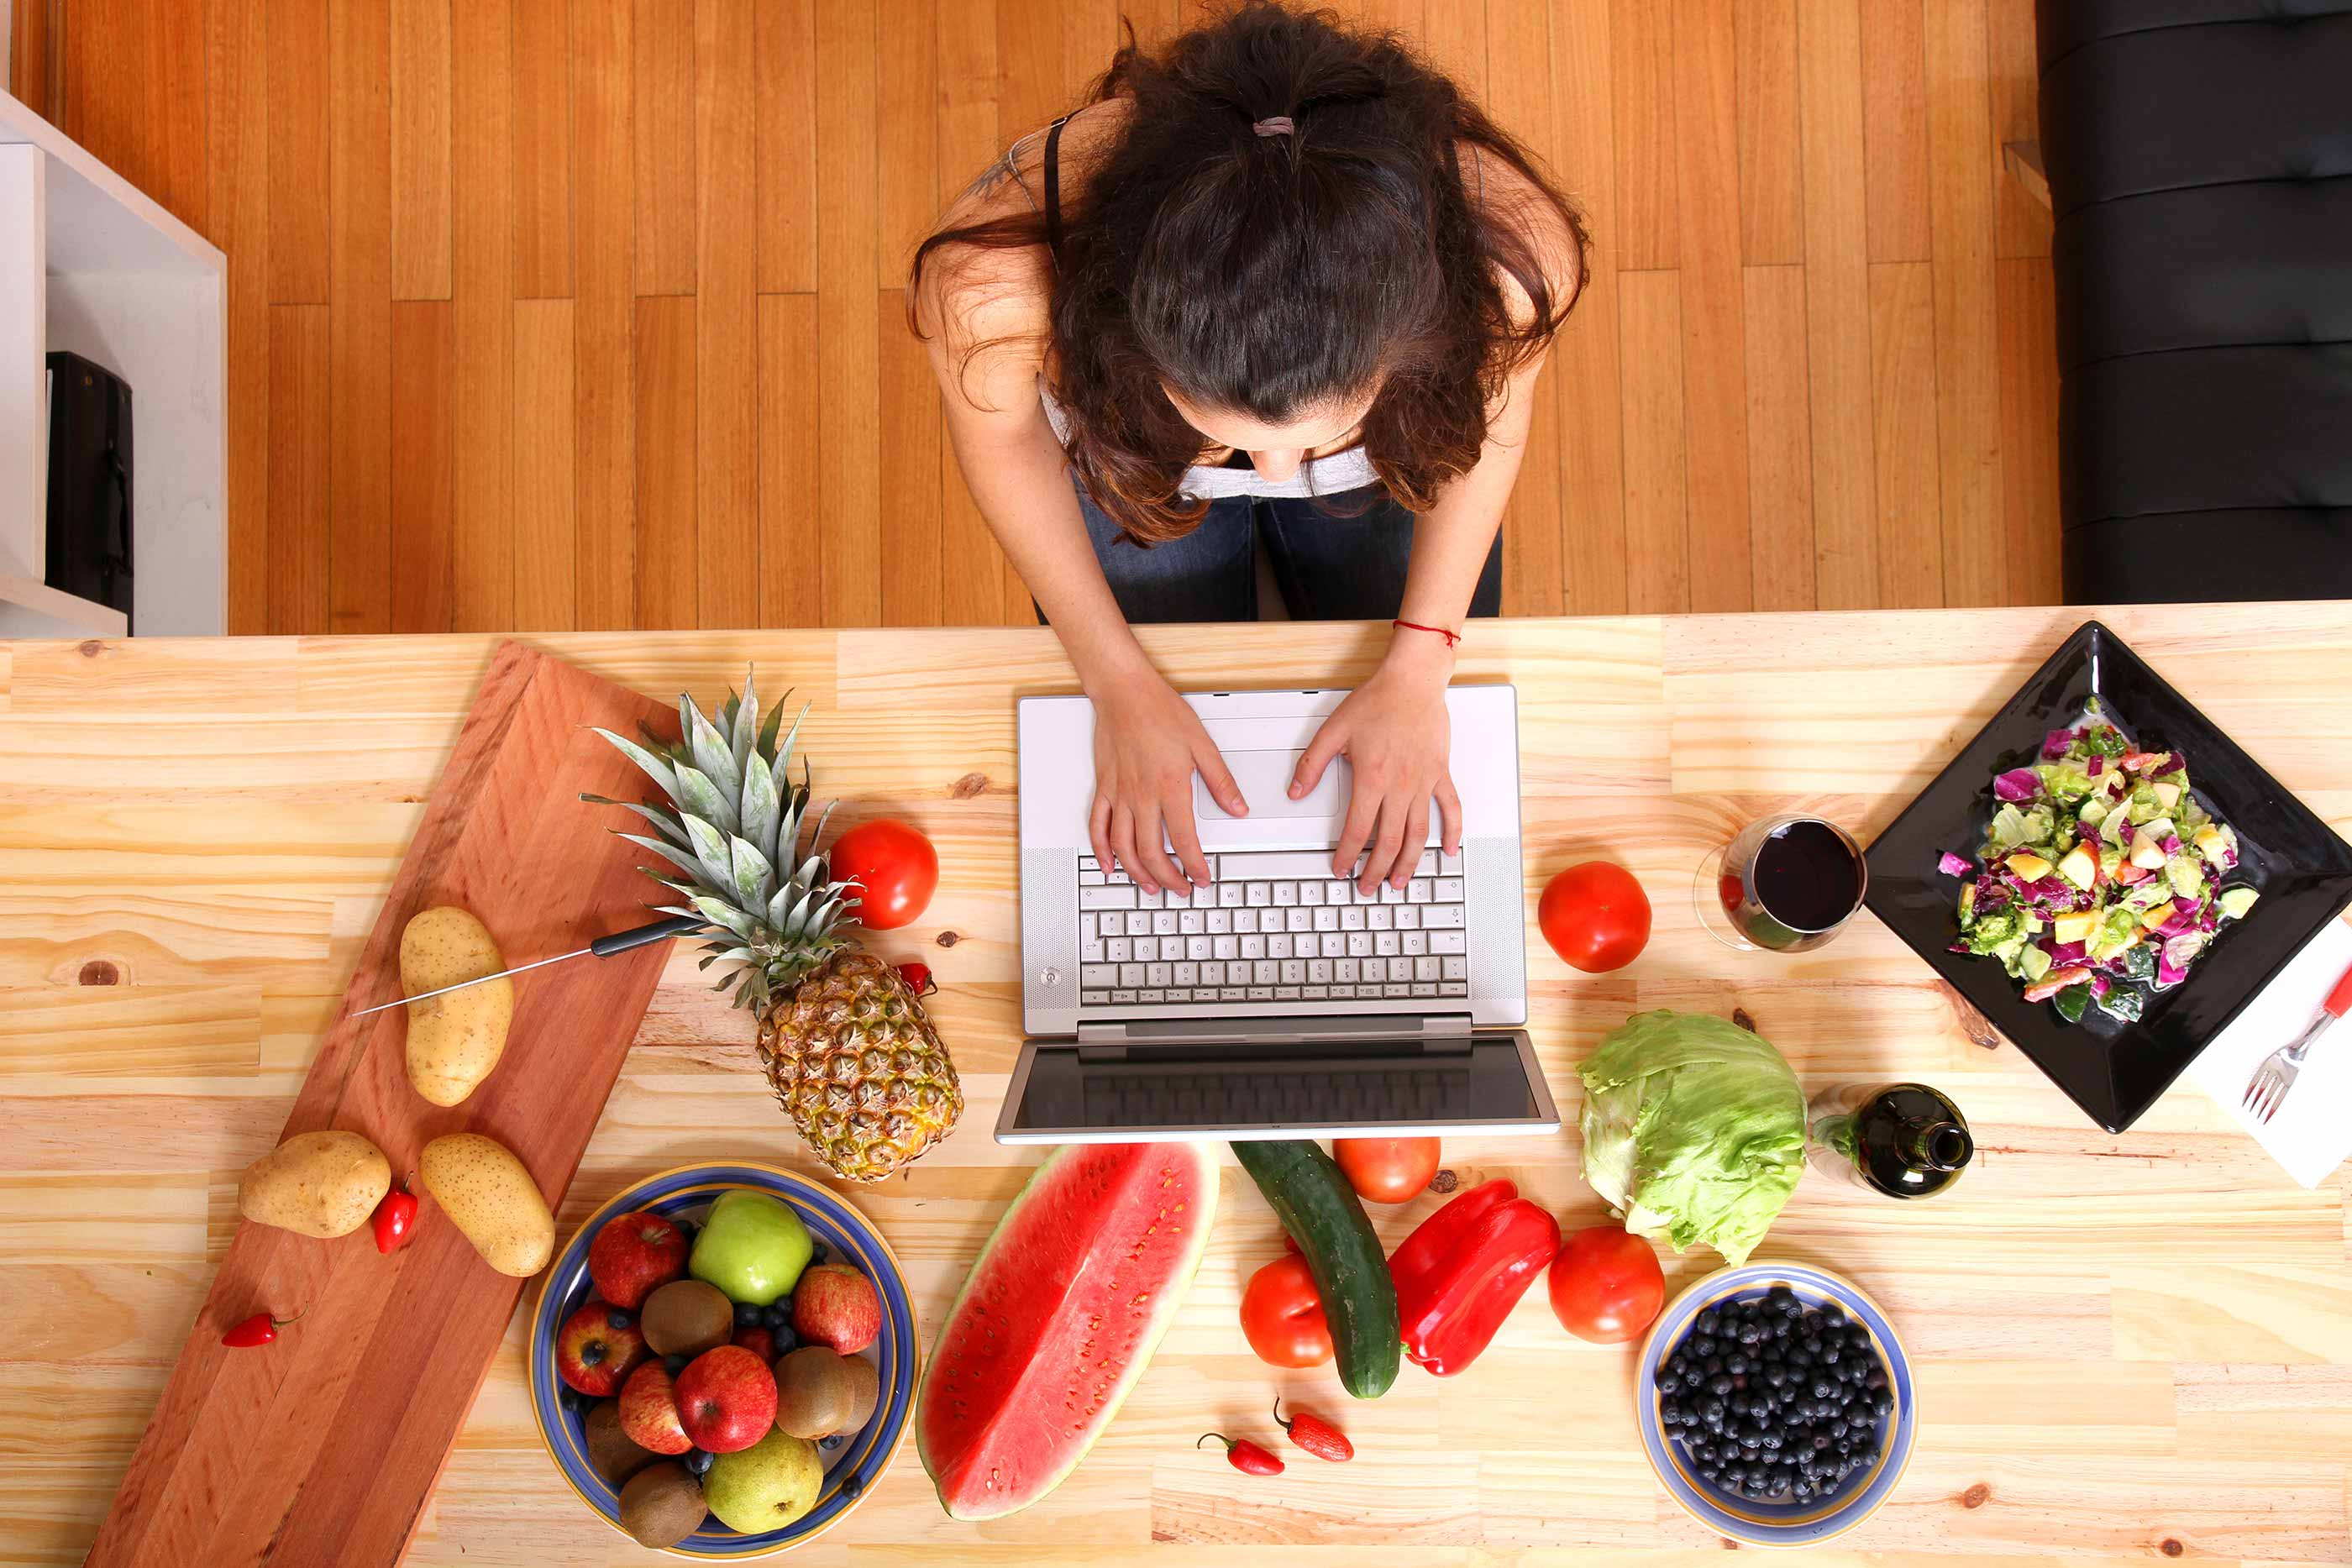 Woman researching recipes on a laptop, on a table surrounded by fresh produce.